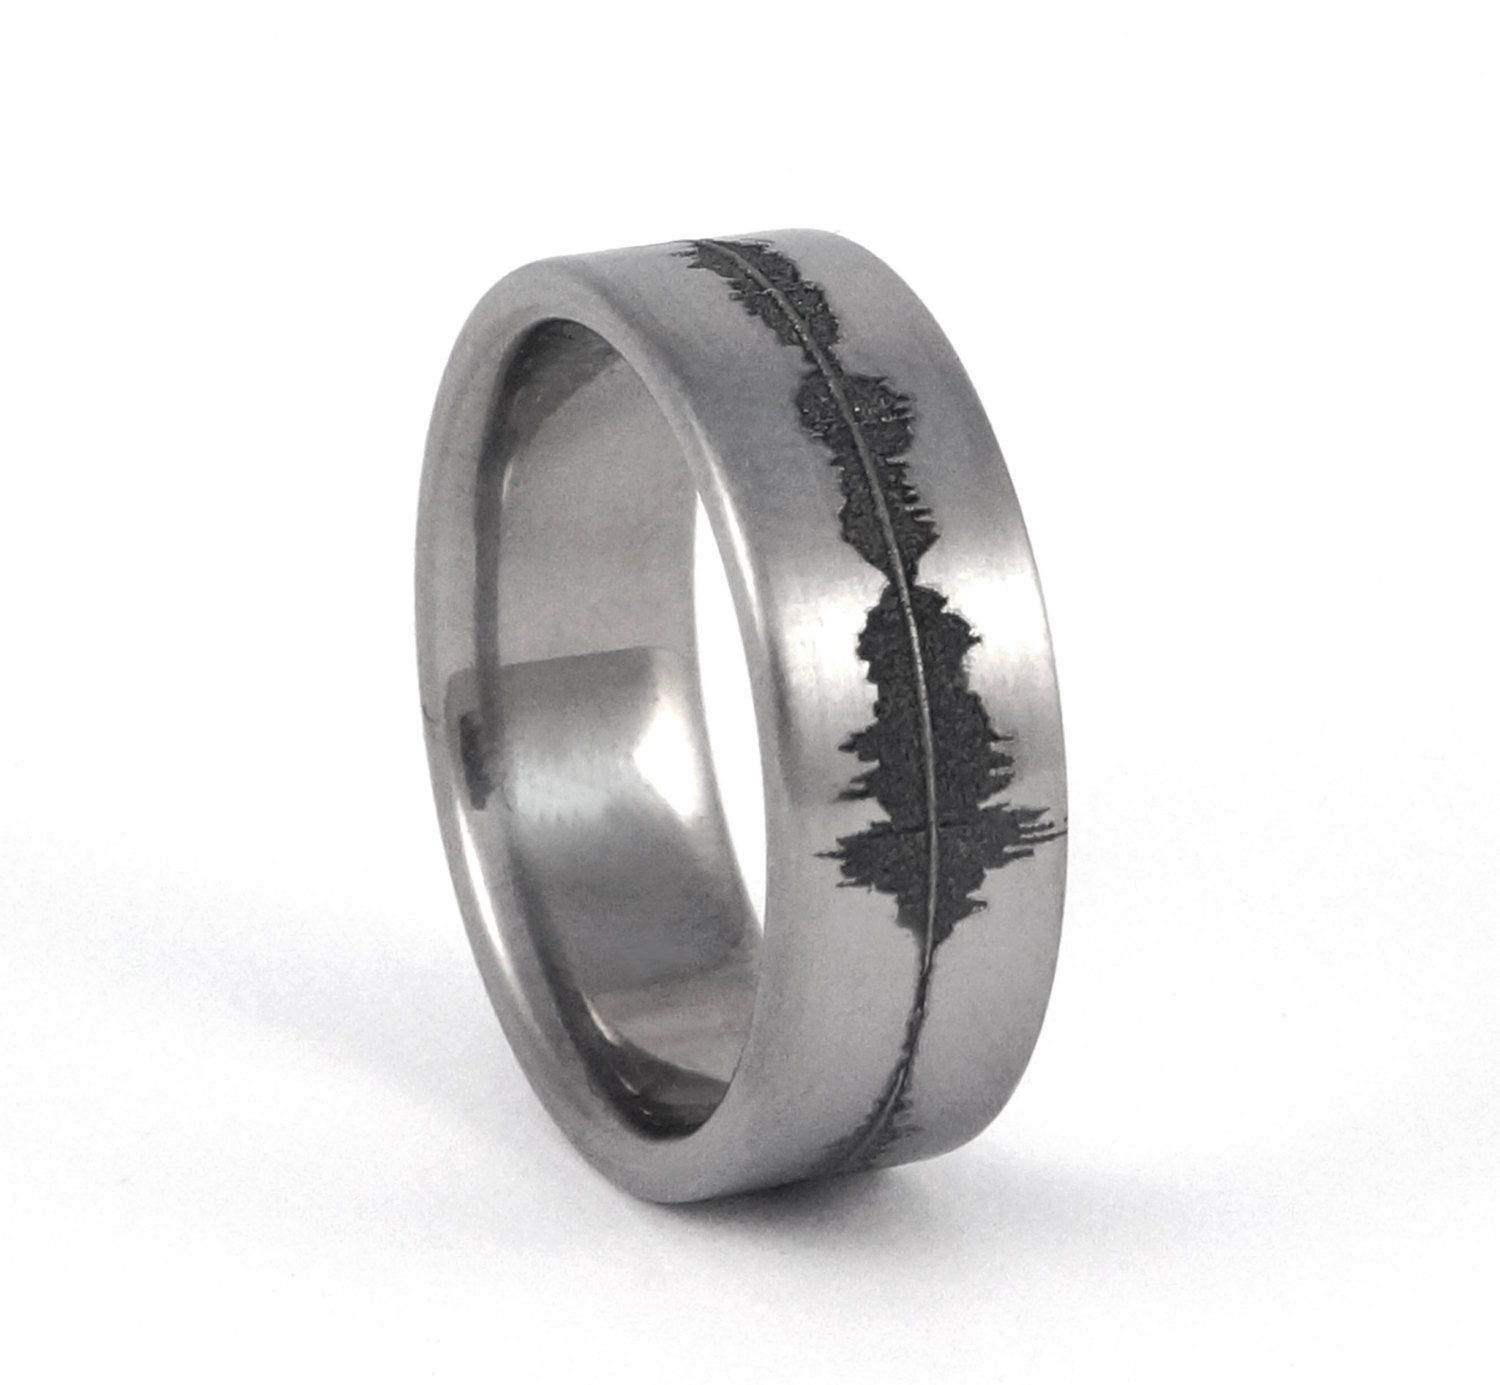 Custom Anium Soundwave Ring Geek Wedding Band For Him Personalized Rings Unique Sound Wave Geekery Gift Nerd